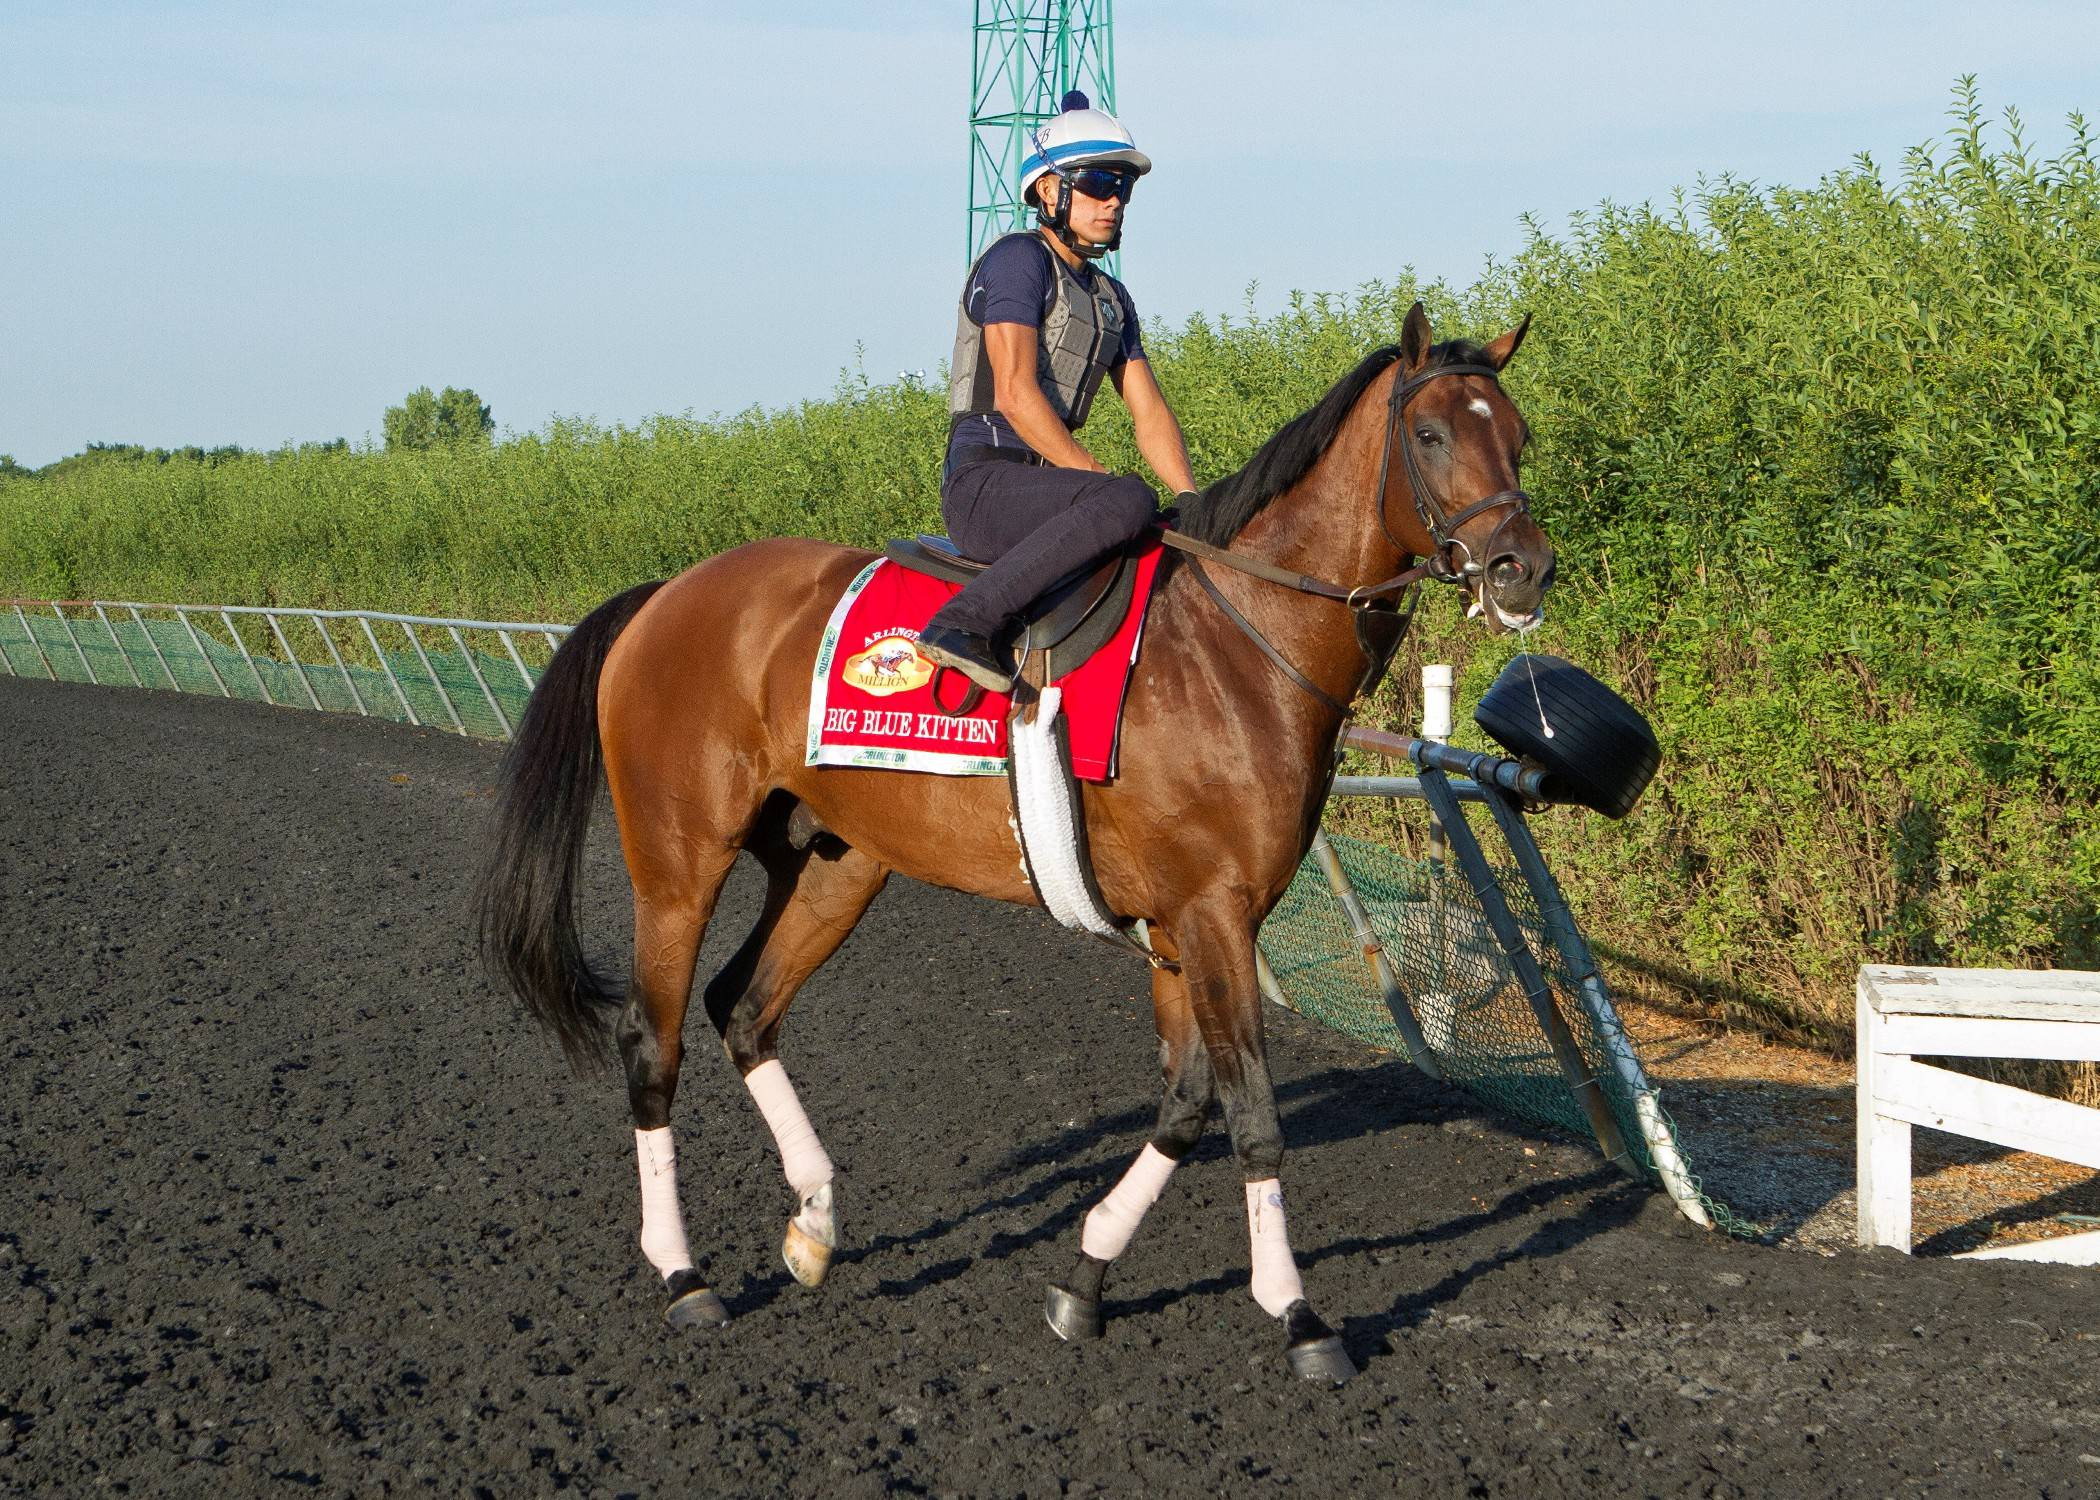 Big Blue Kitten gets in a morning workout this week for Saturday's running of Arlington Million.